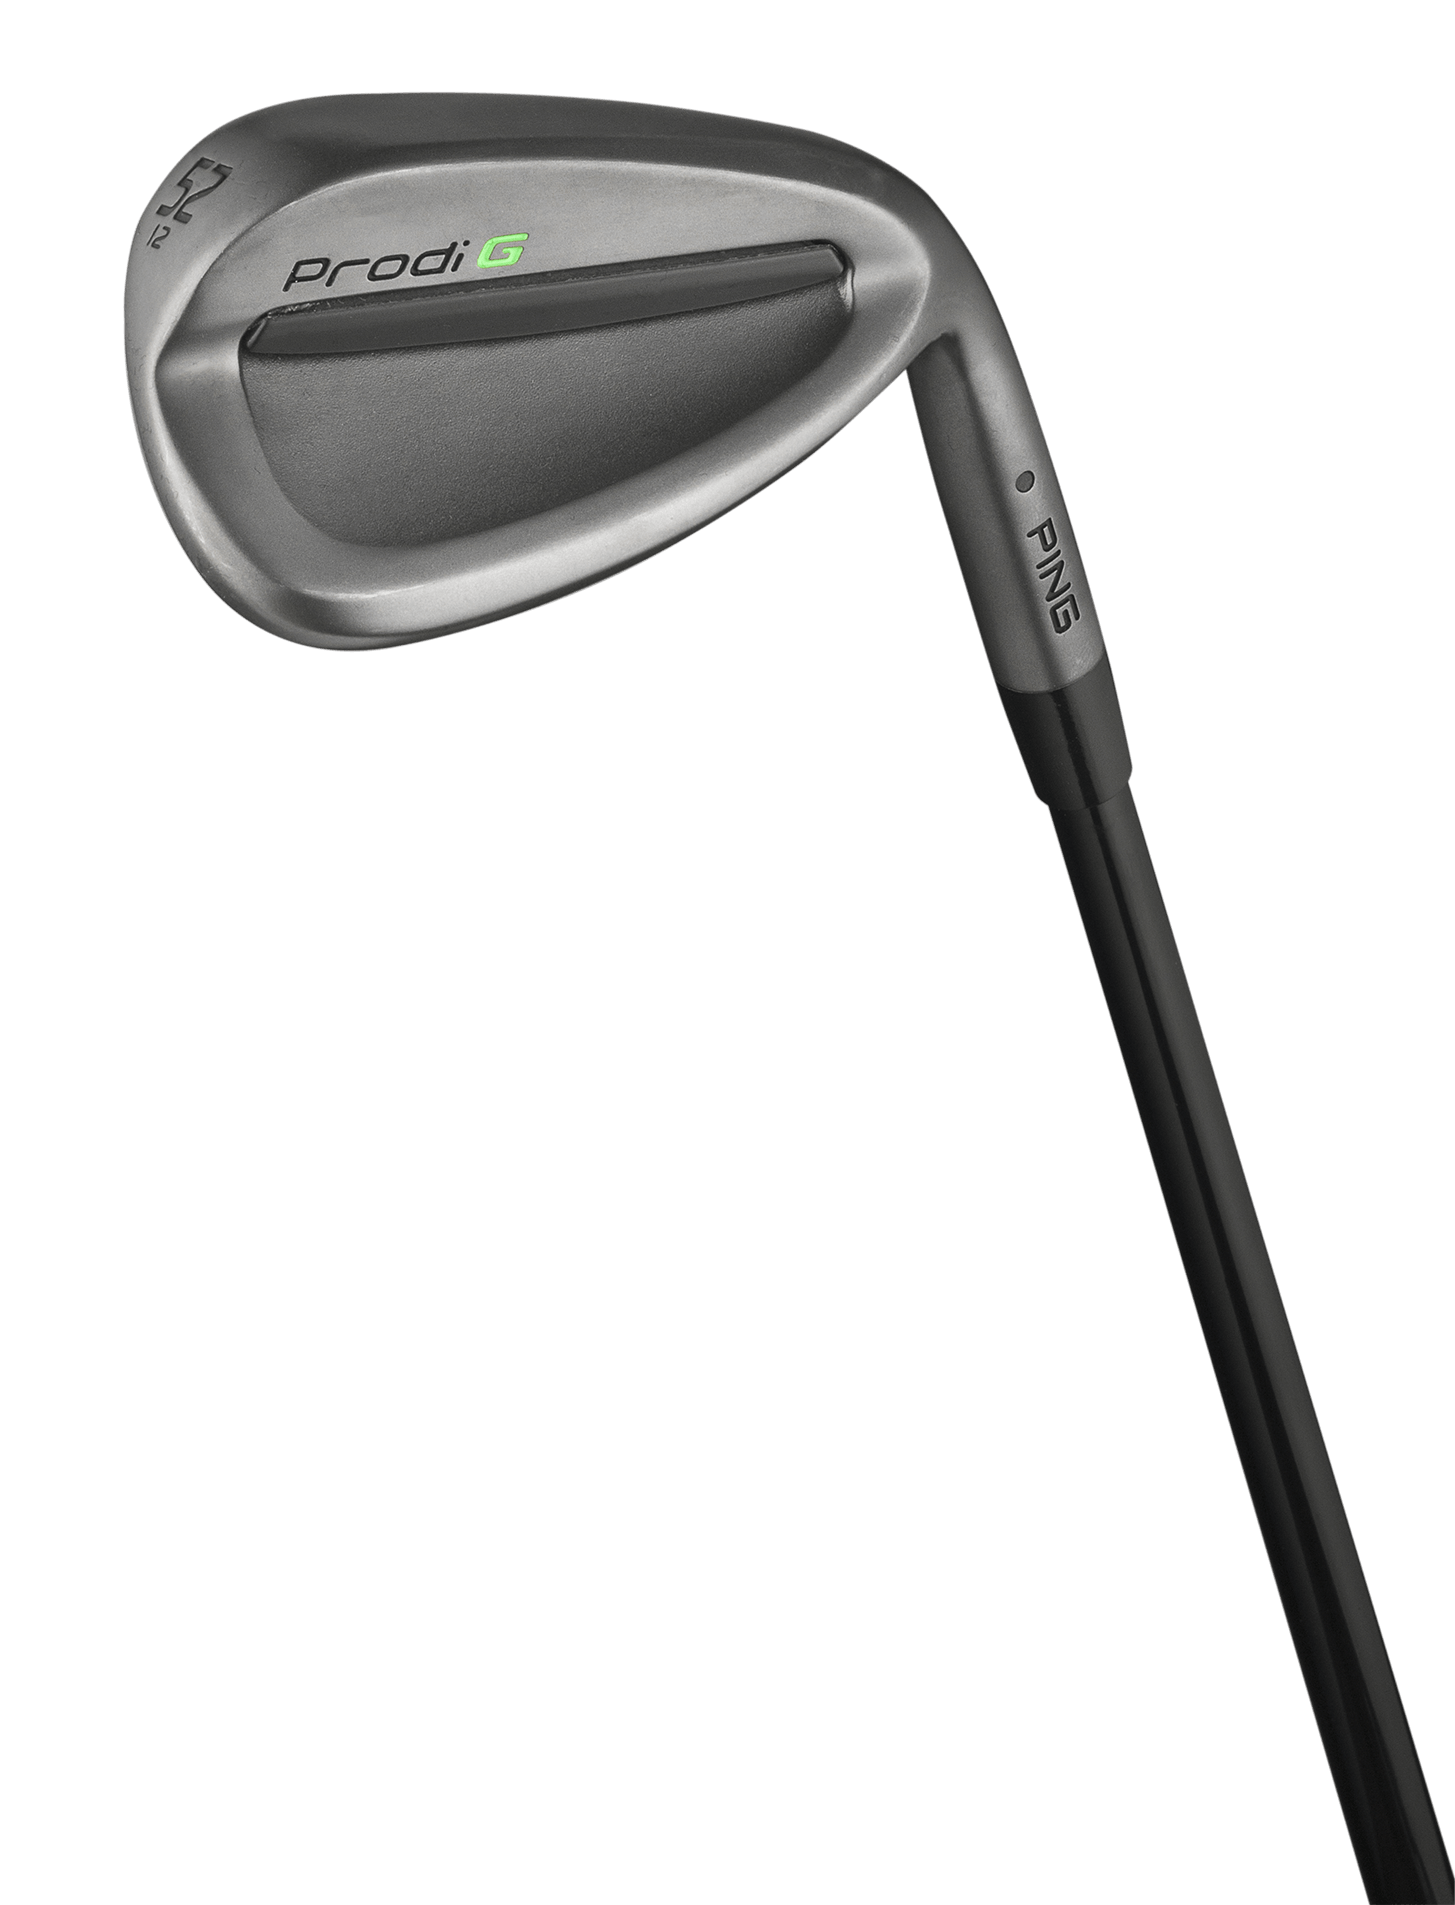 Ping_Prodi_G_JR_wedge_52